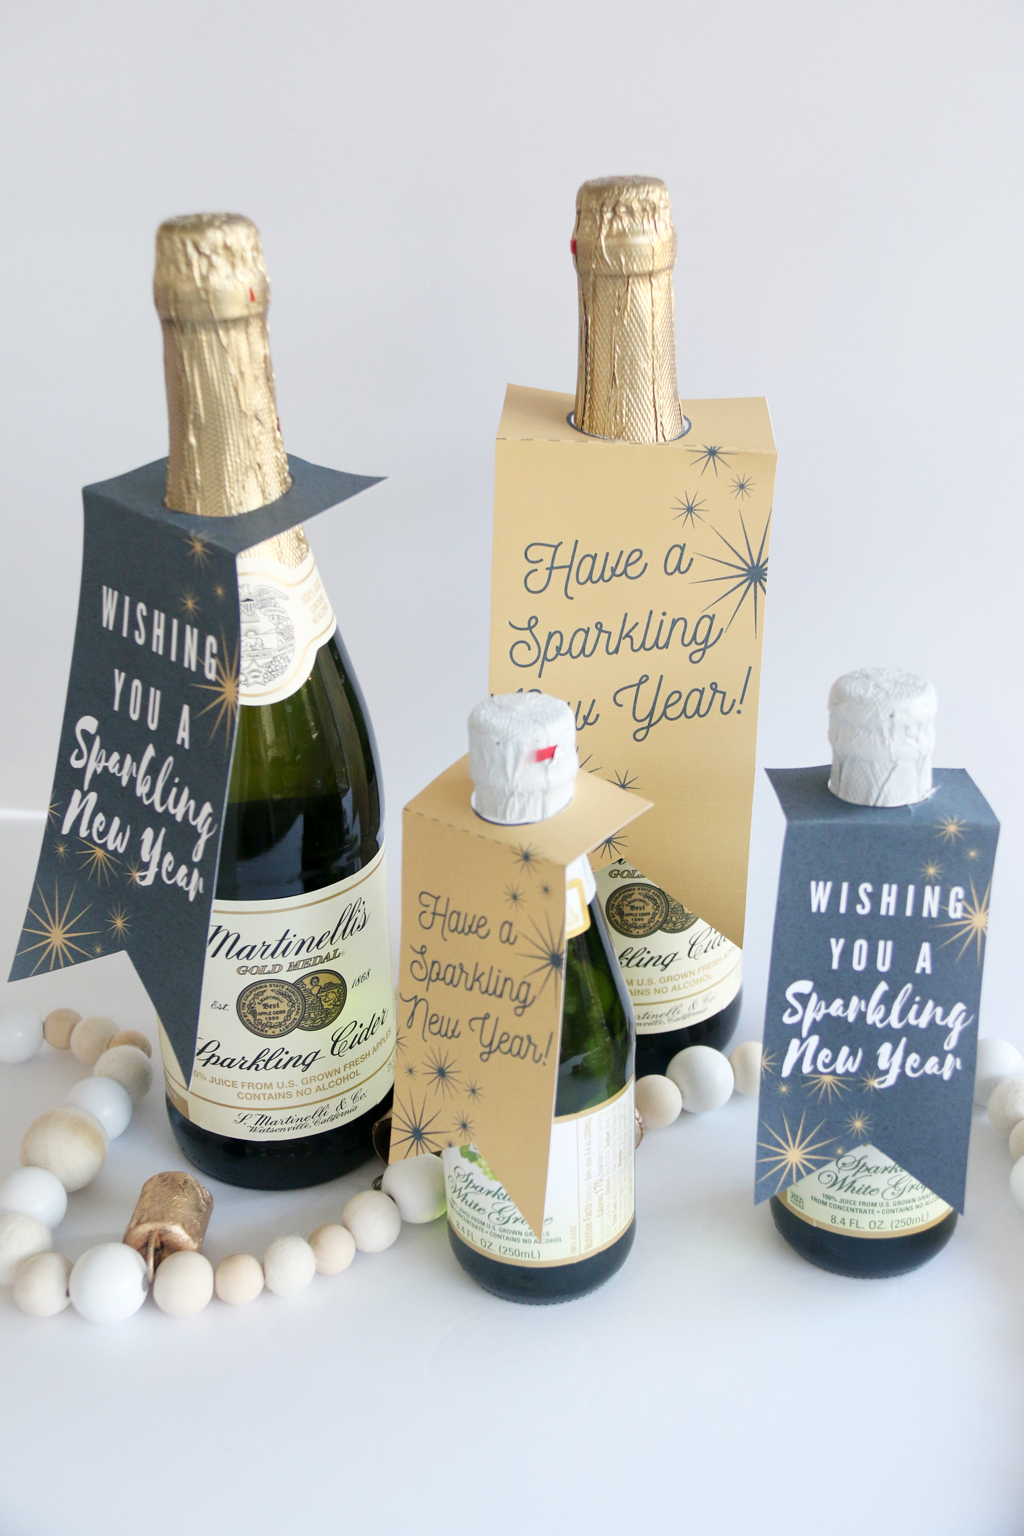 Large and small bottles of sparkling cider with New Year Sparkling Cider Gift Tags on them